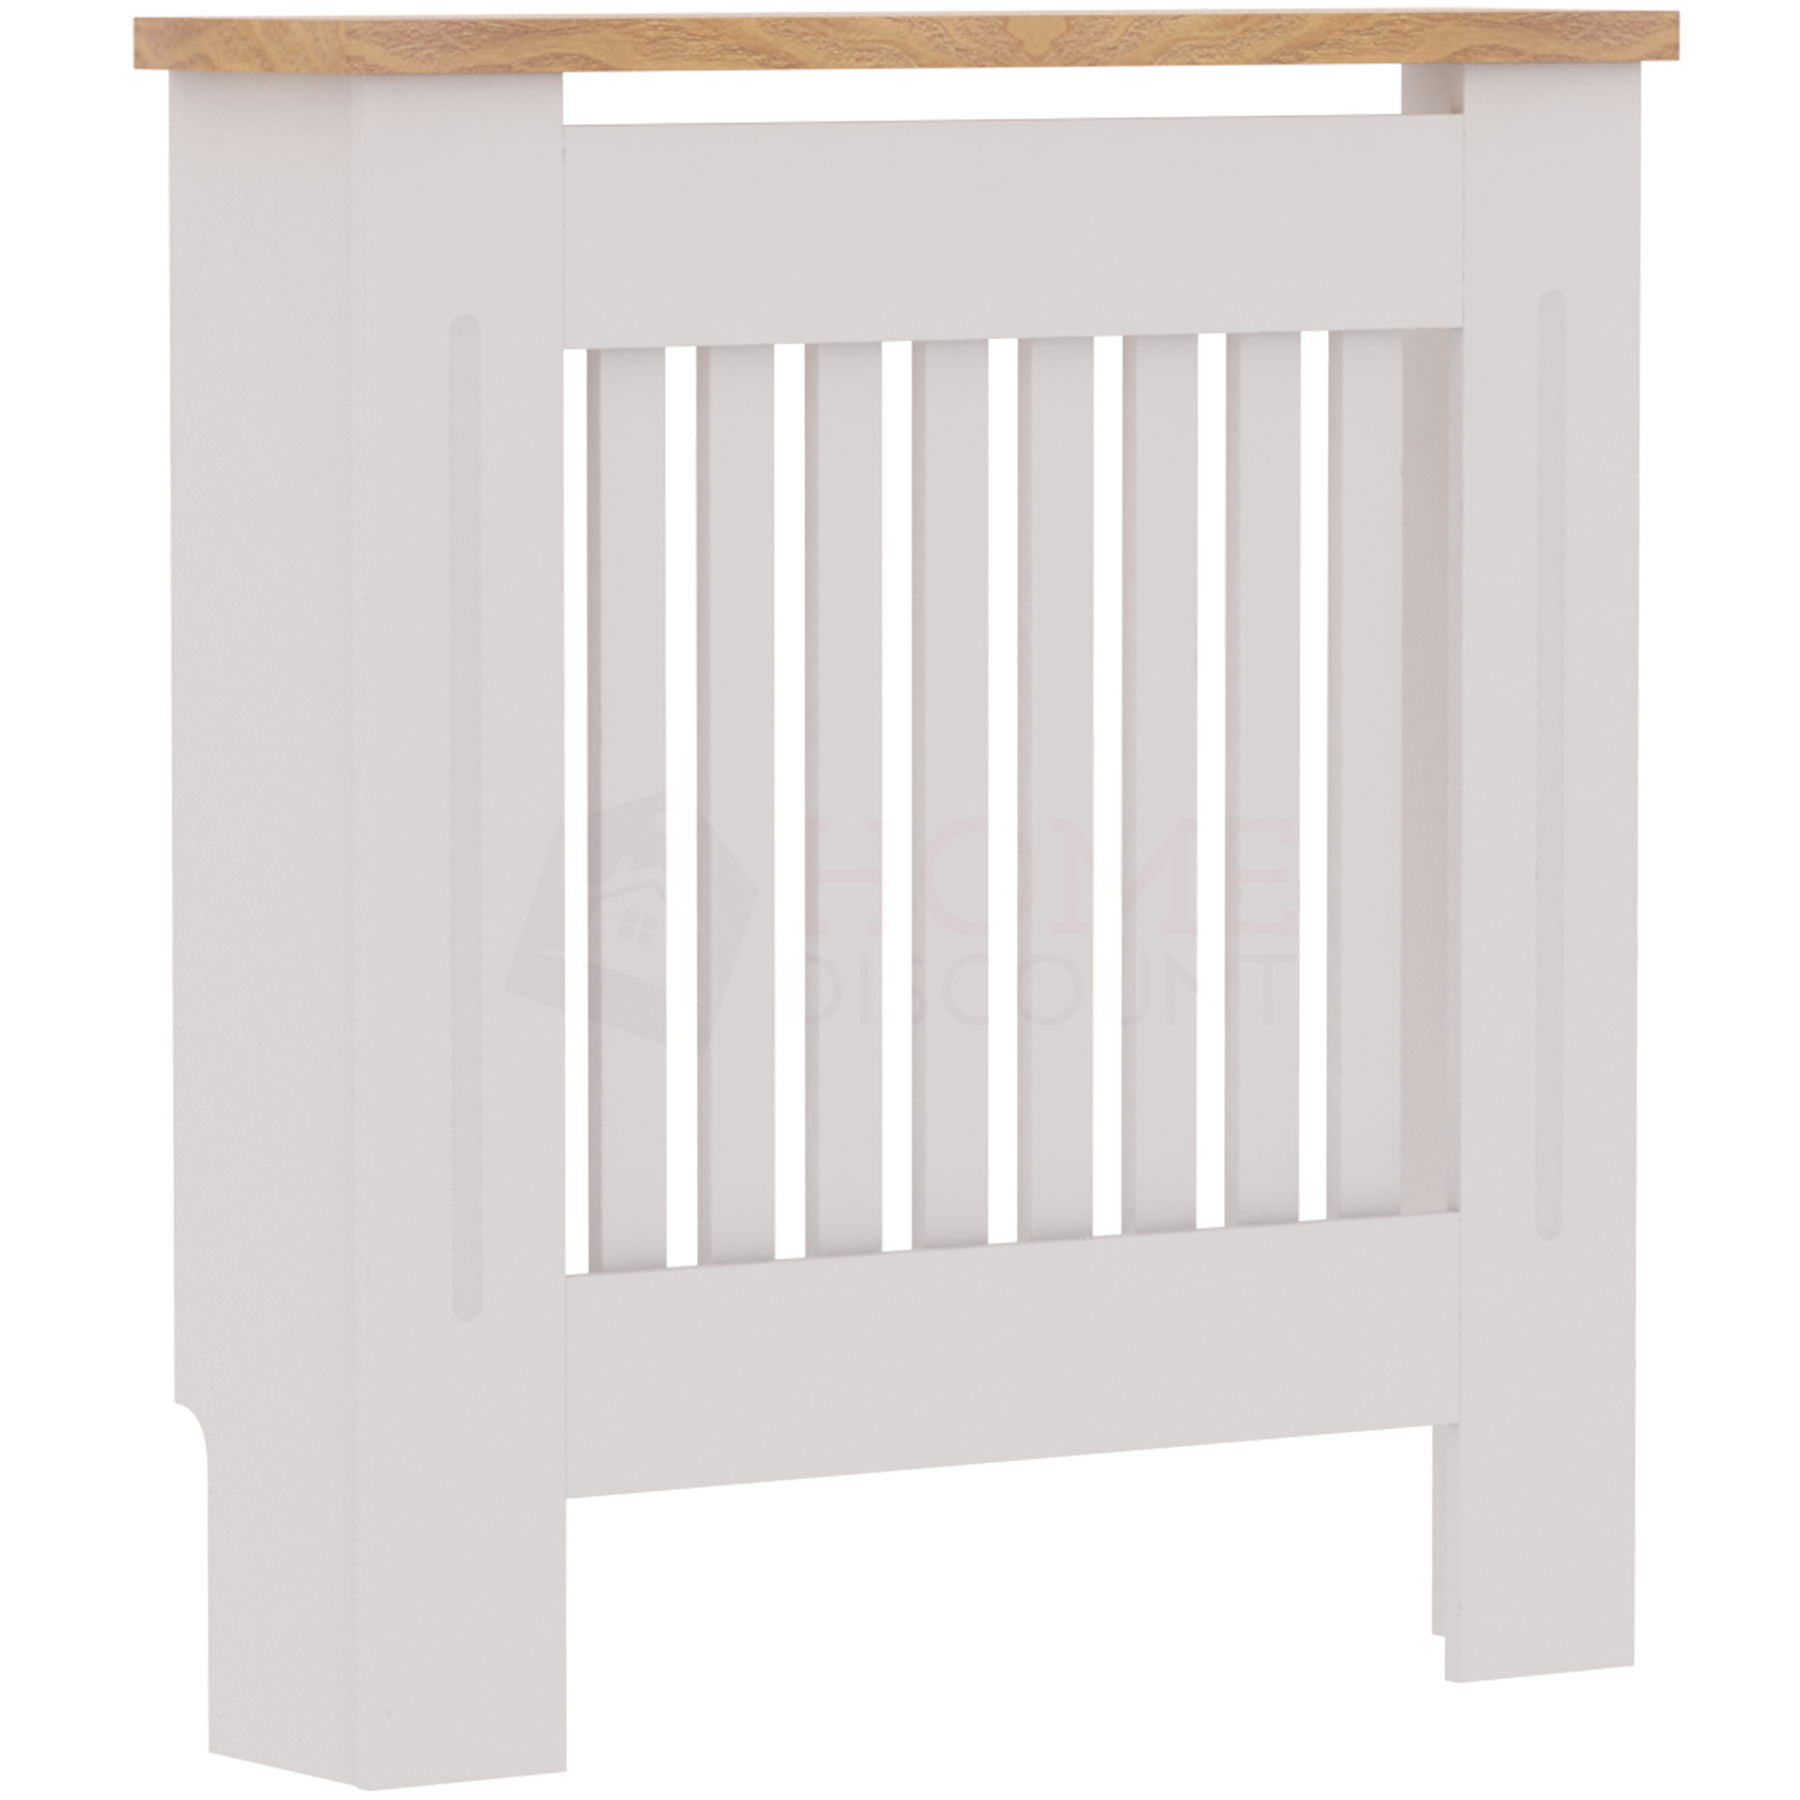 Radiateur-Housse-Blanc-inachevee-MODERNE-BOIS-TRADITIONNELLE-Grill-cabinet-furniture miniature 9